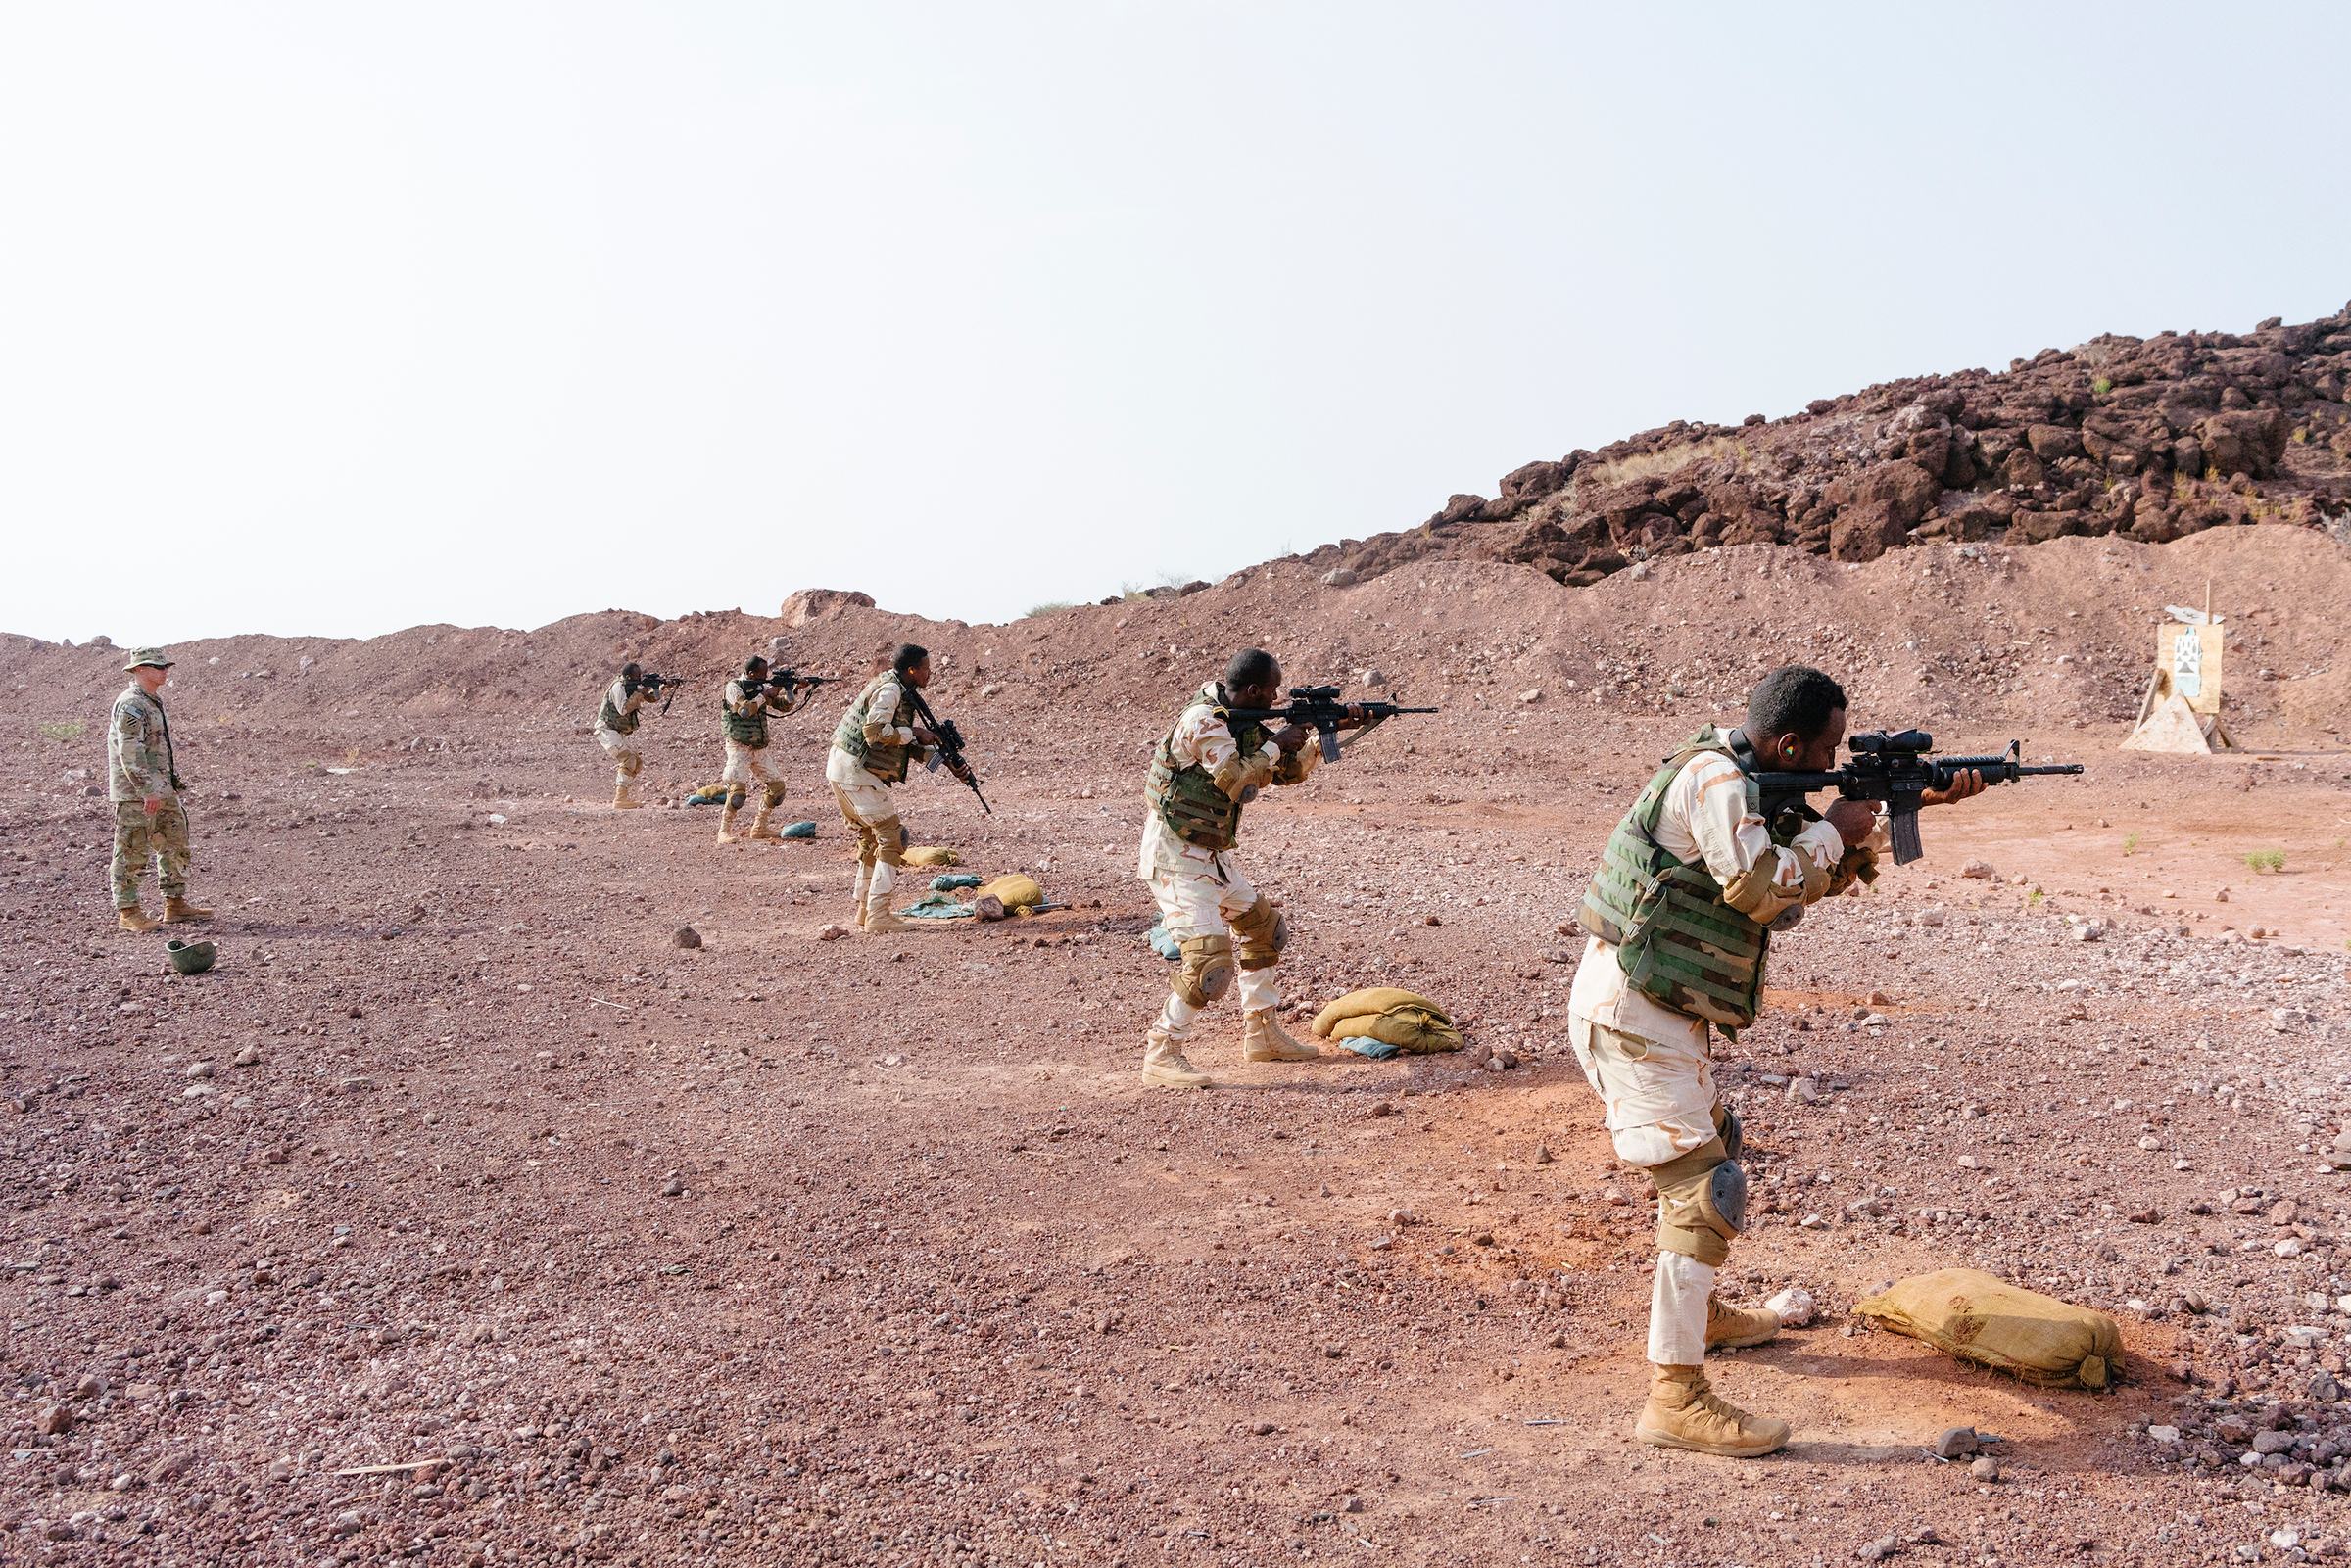 U.S. soldiers oversee marksmanship training of the Djiboutian Bataillon d'Intervention Rapide, an infantry unit equipped with American weaponry.